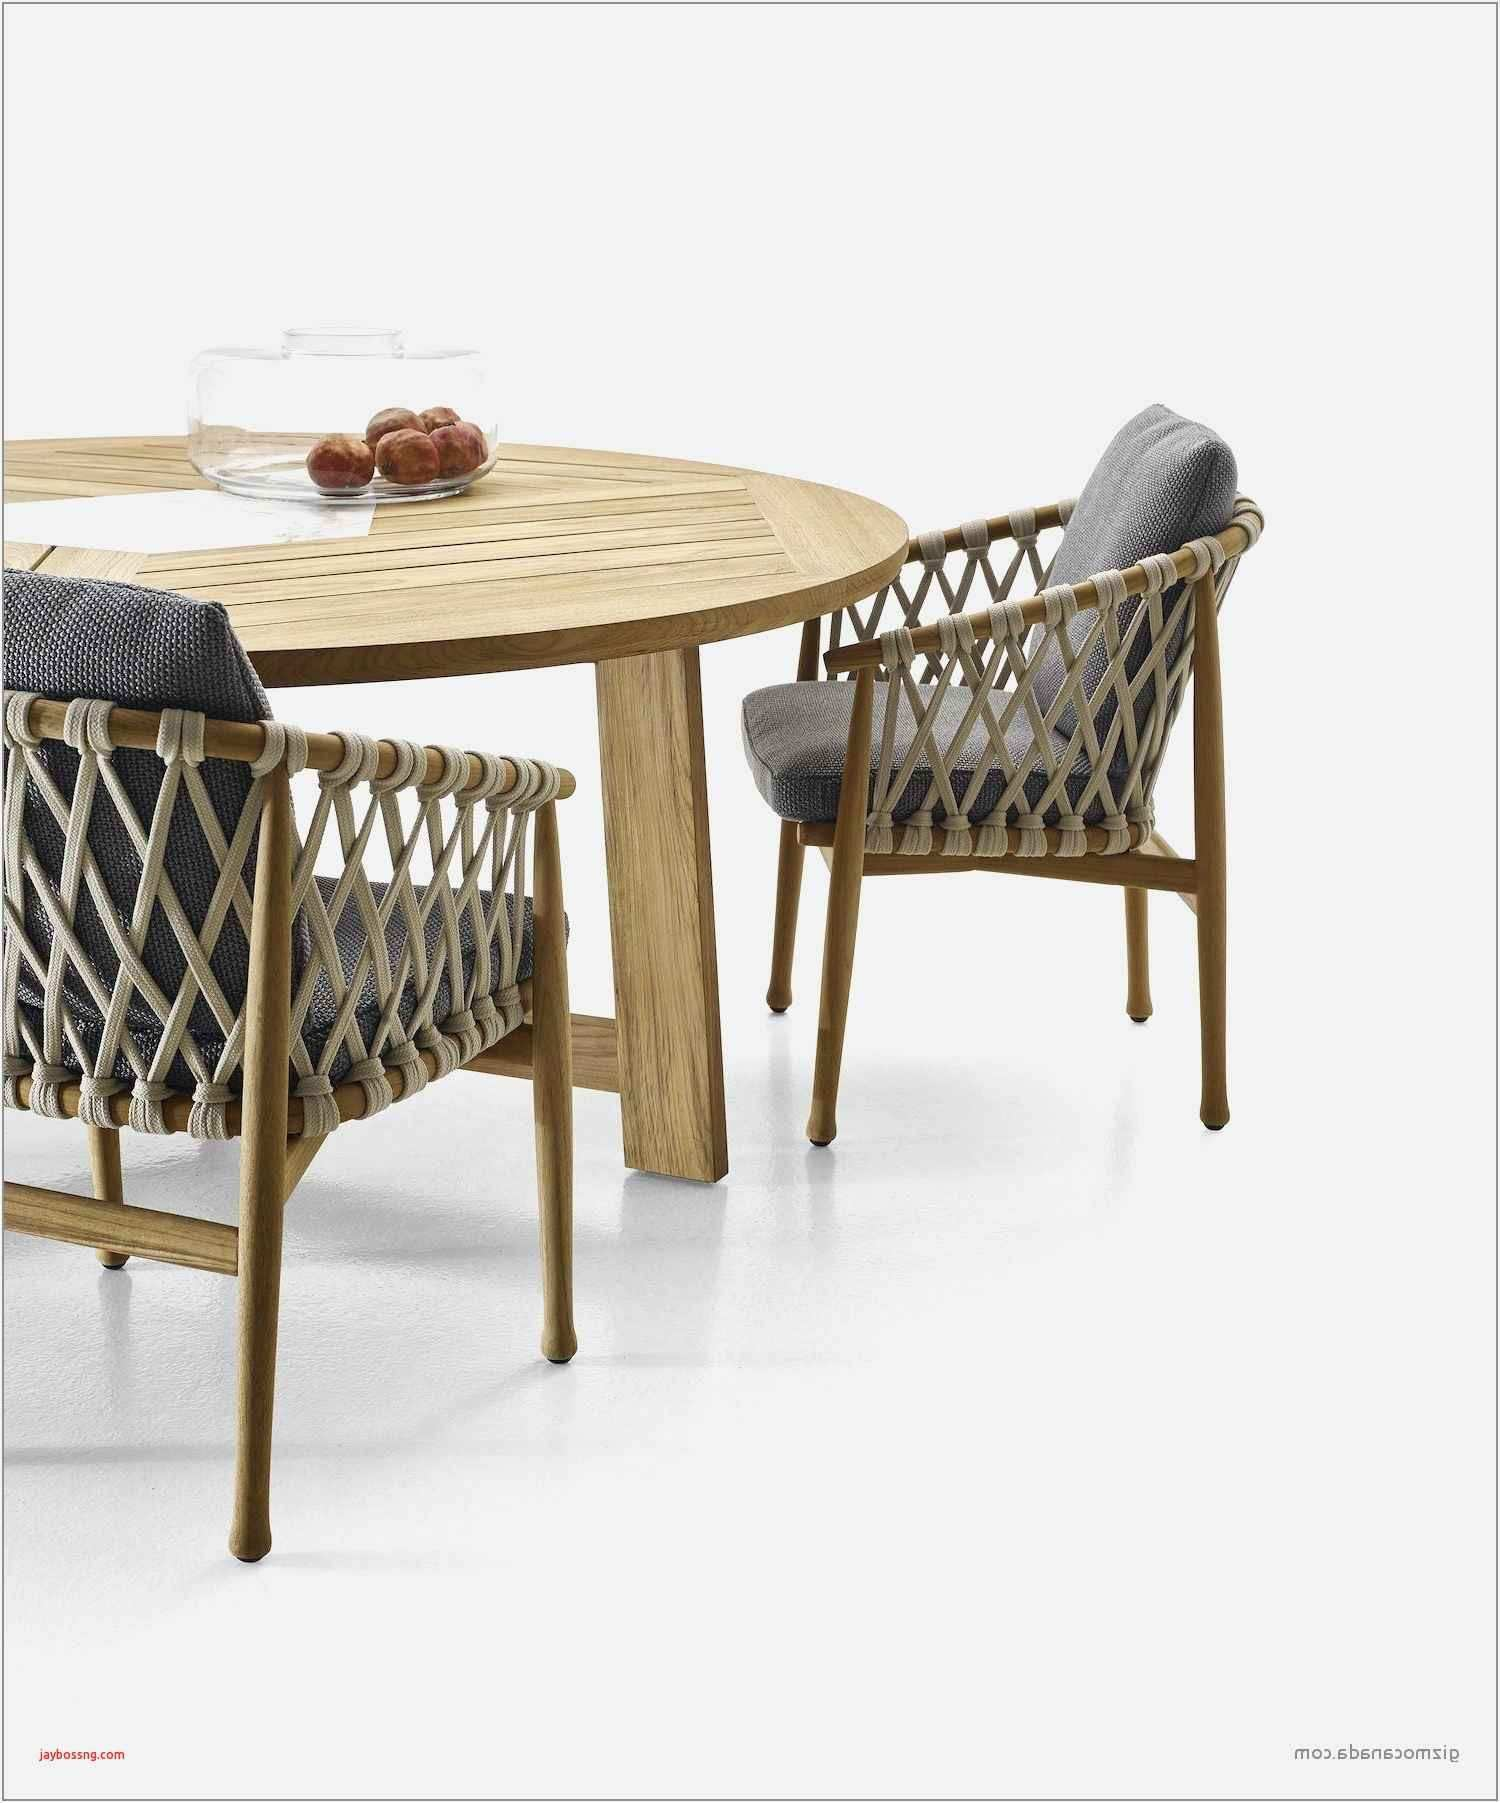 The Folding Table Best